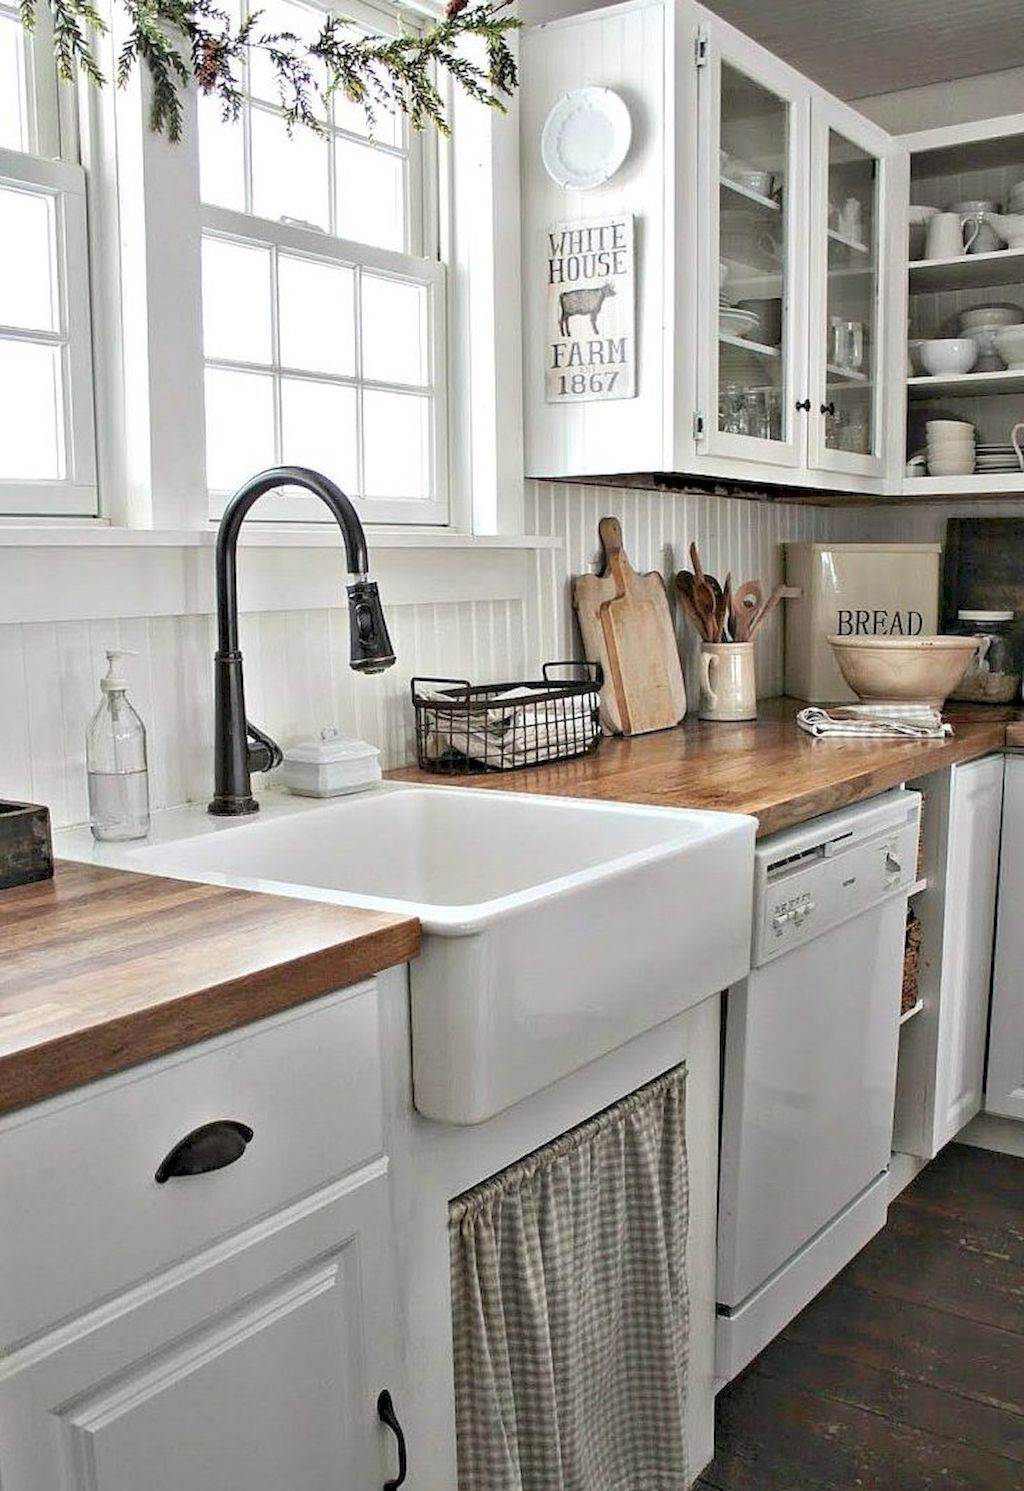 Stunning 40 Beautiful Farmhouse Kitchen Makeover Ideas on A Budget https://decorapartment.com/40-beautiful-farmhouse-kitchen-makeover-ideas-budget/